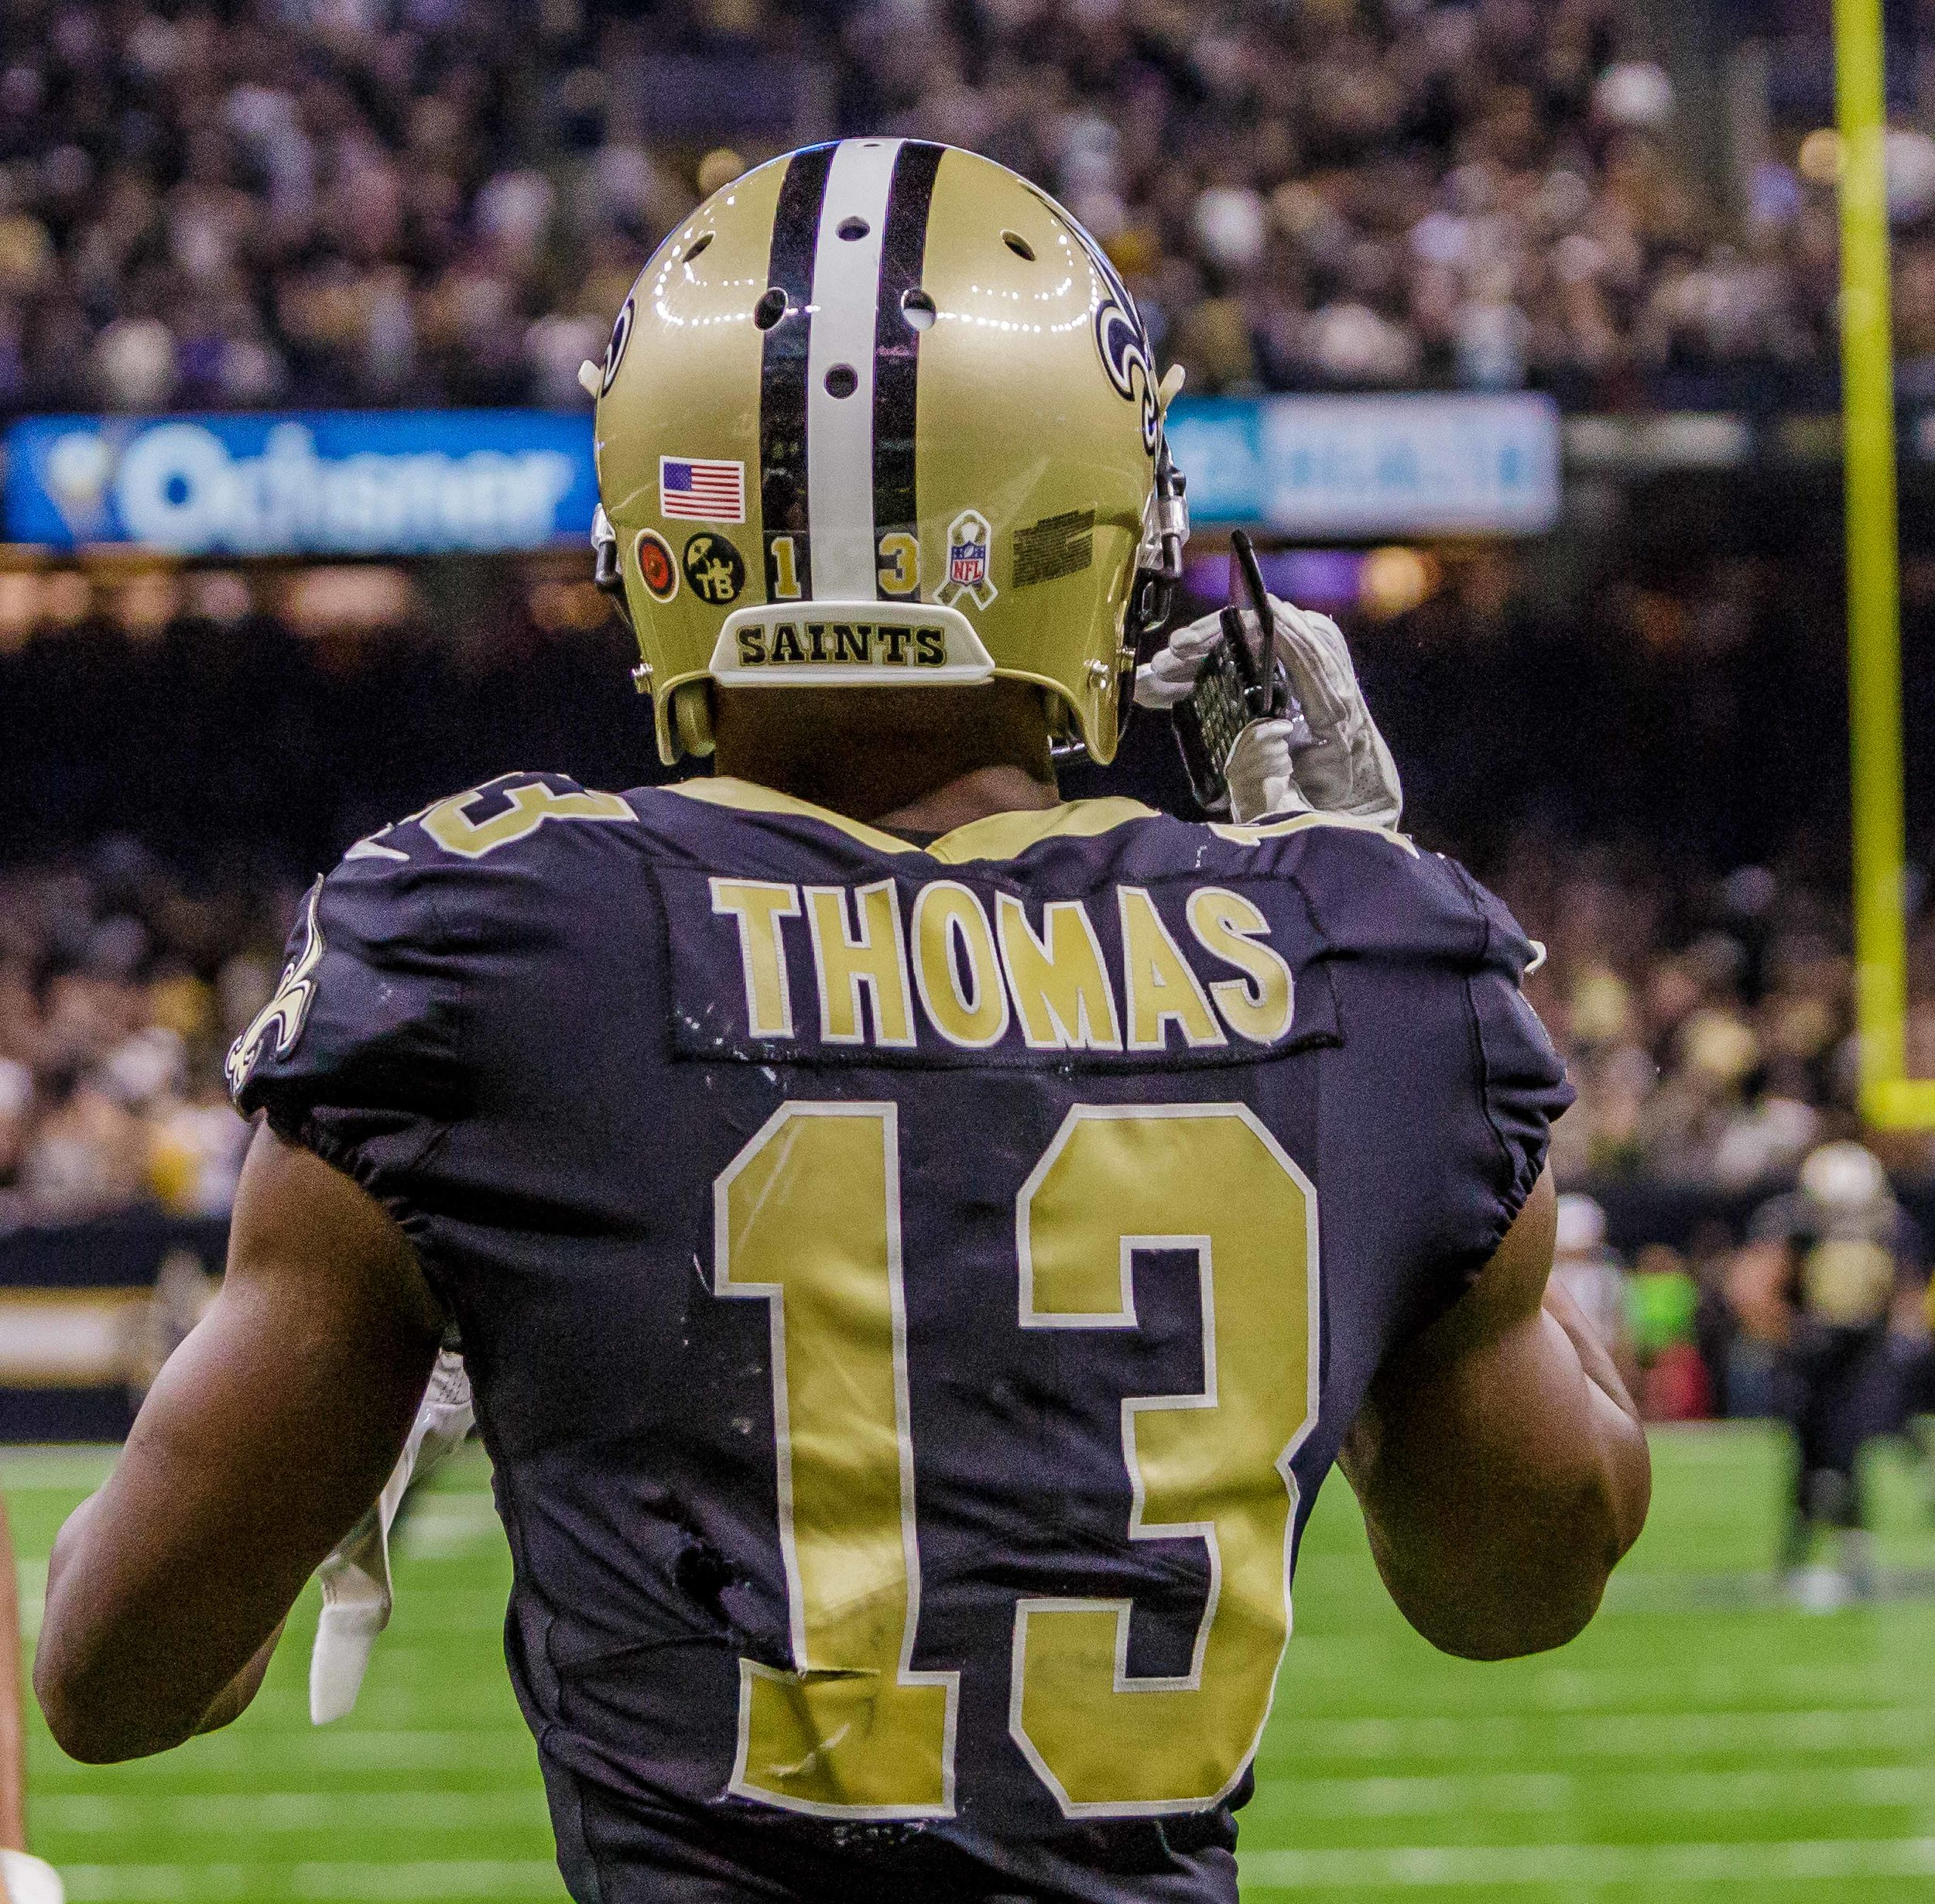 New OrleansSaintswide receiver Michael Thomas (13) pulls out a cell phone that was stashed under the field goal post after scoring a touchdown during the first half of an NFL football game against the Los Angeles Rams in New Orleans, La. Sunday, Nov. 4, 2018. Thomas used the phone to recreate a touchdown celebration performed by formerSaintsplayer Joe Horn in 2003.